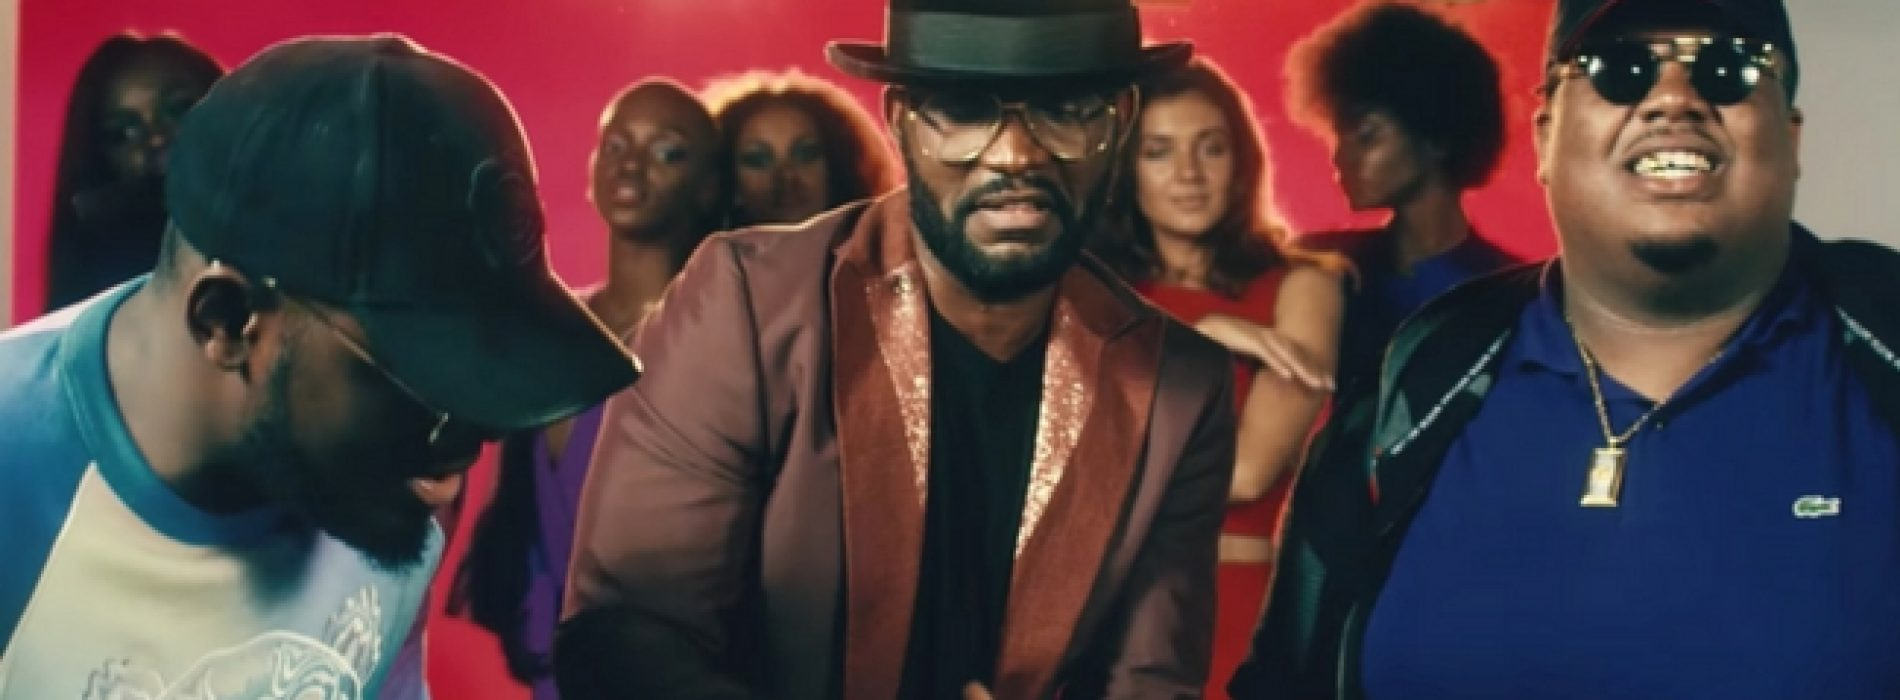 fally ipupa mannequin feat keblack & naza clip officiel